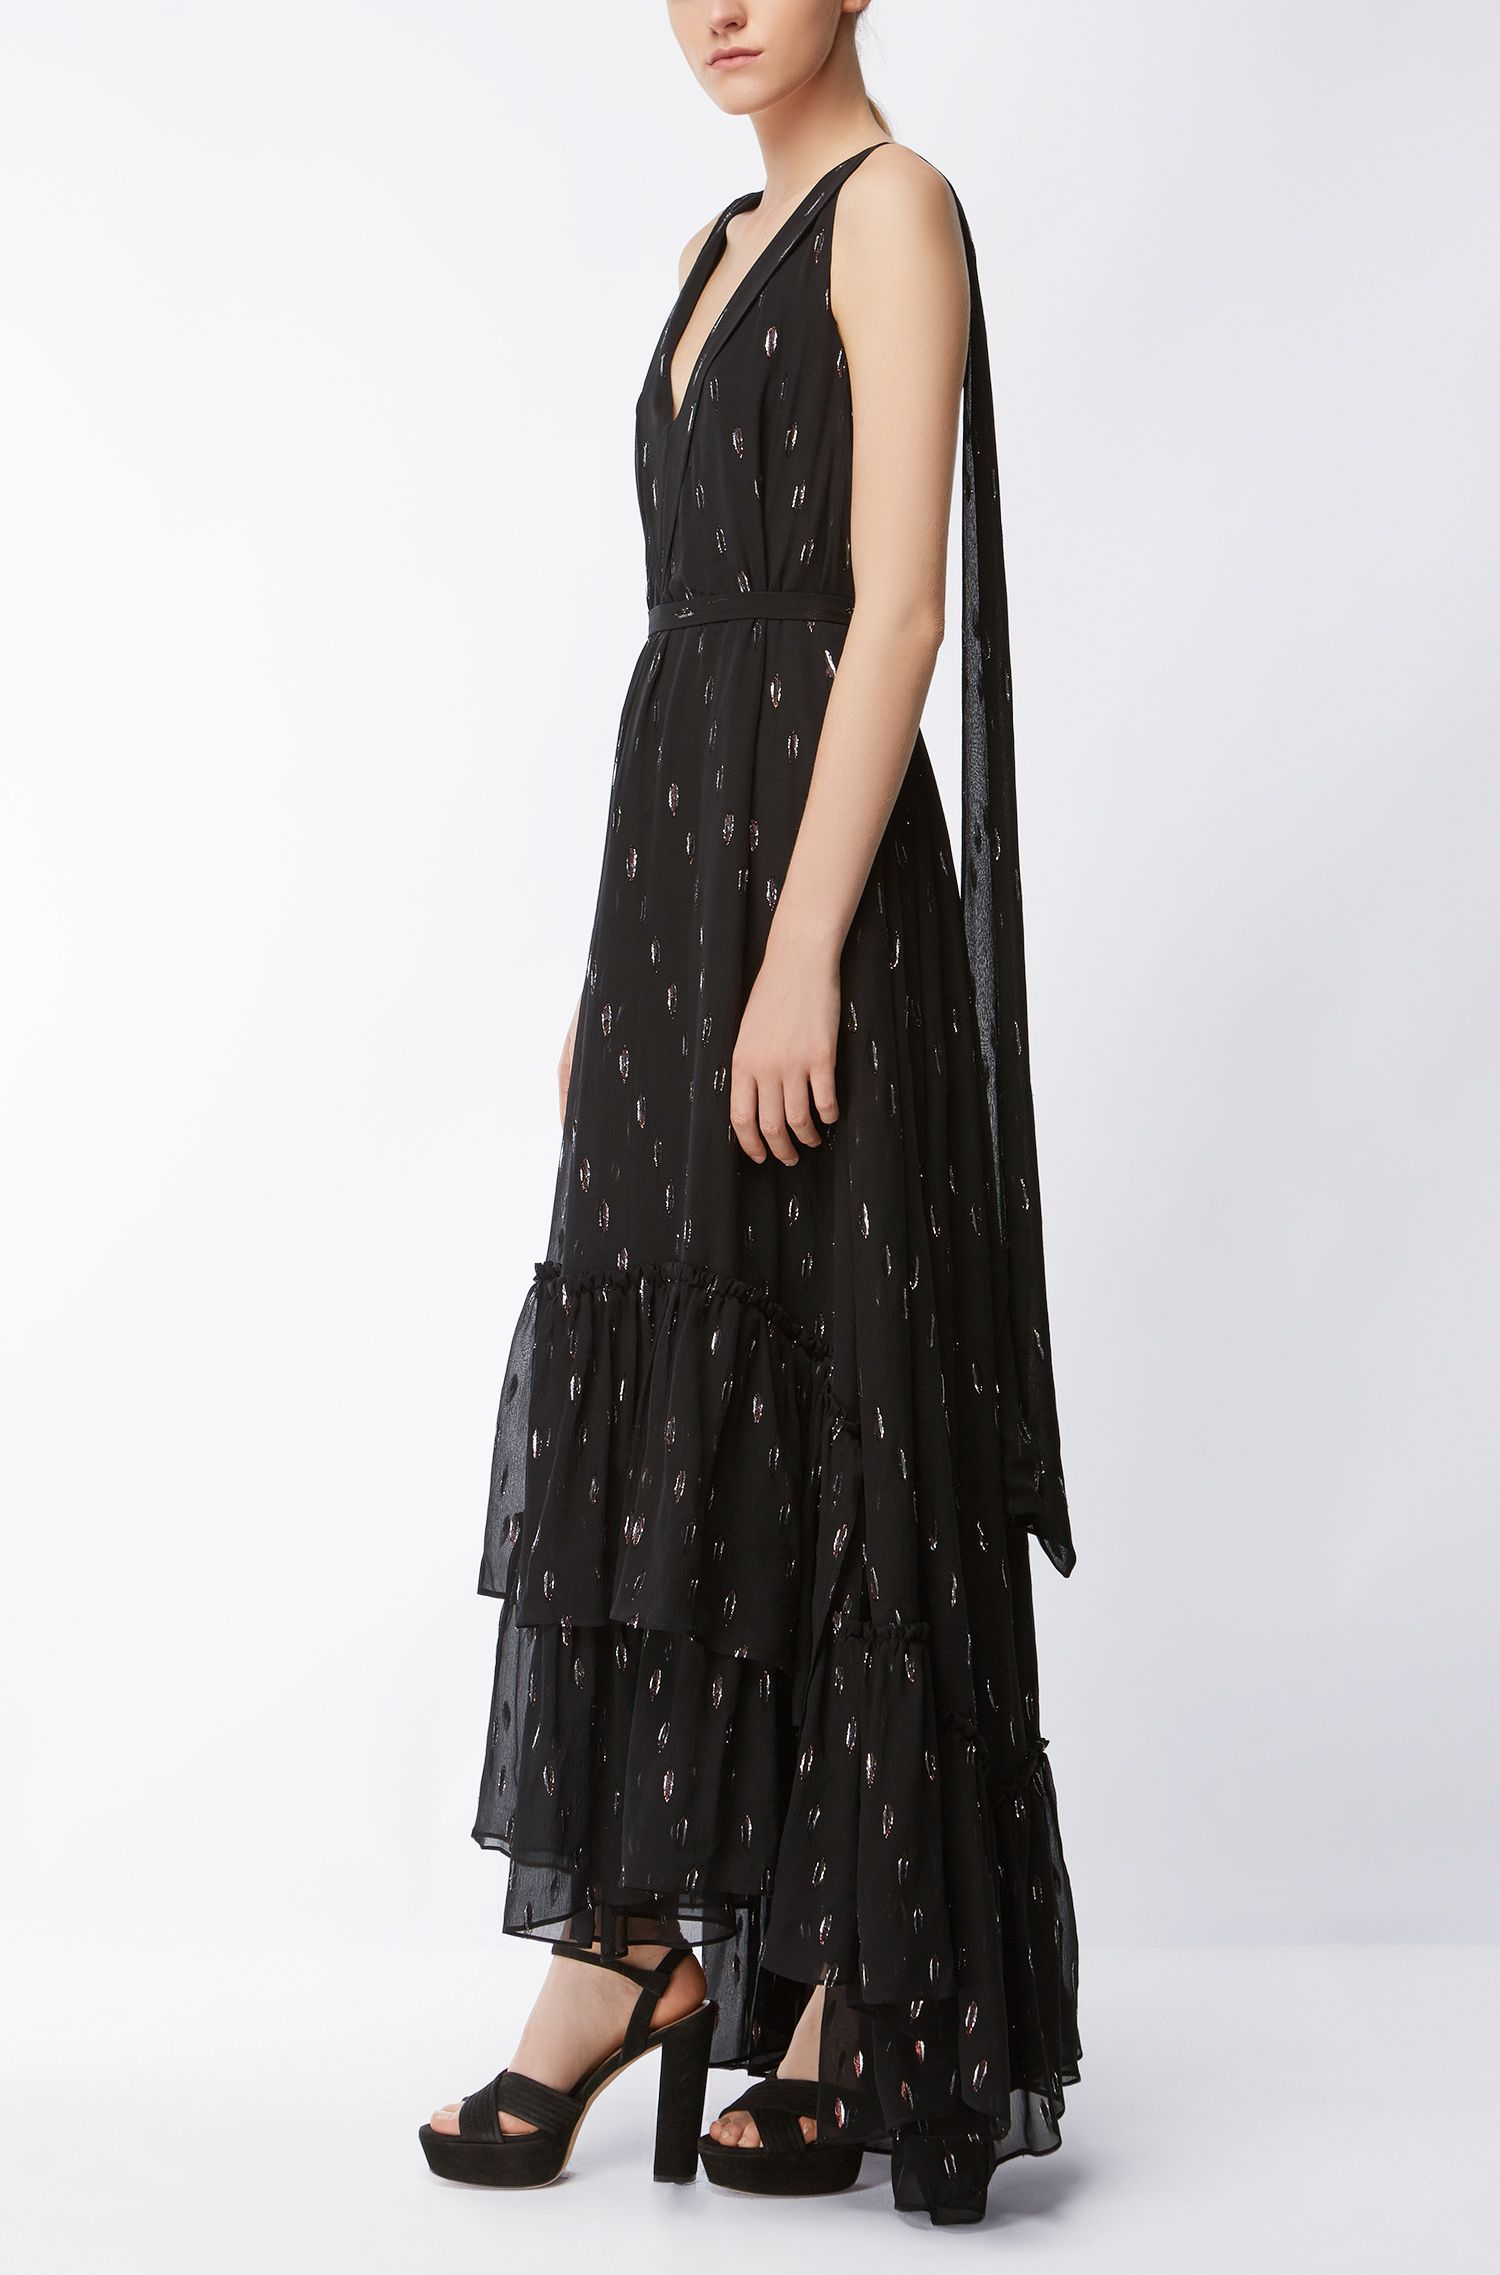 Metallized Silk Dress | Davimea